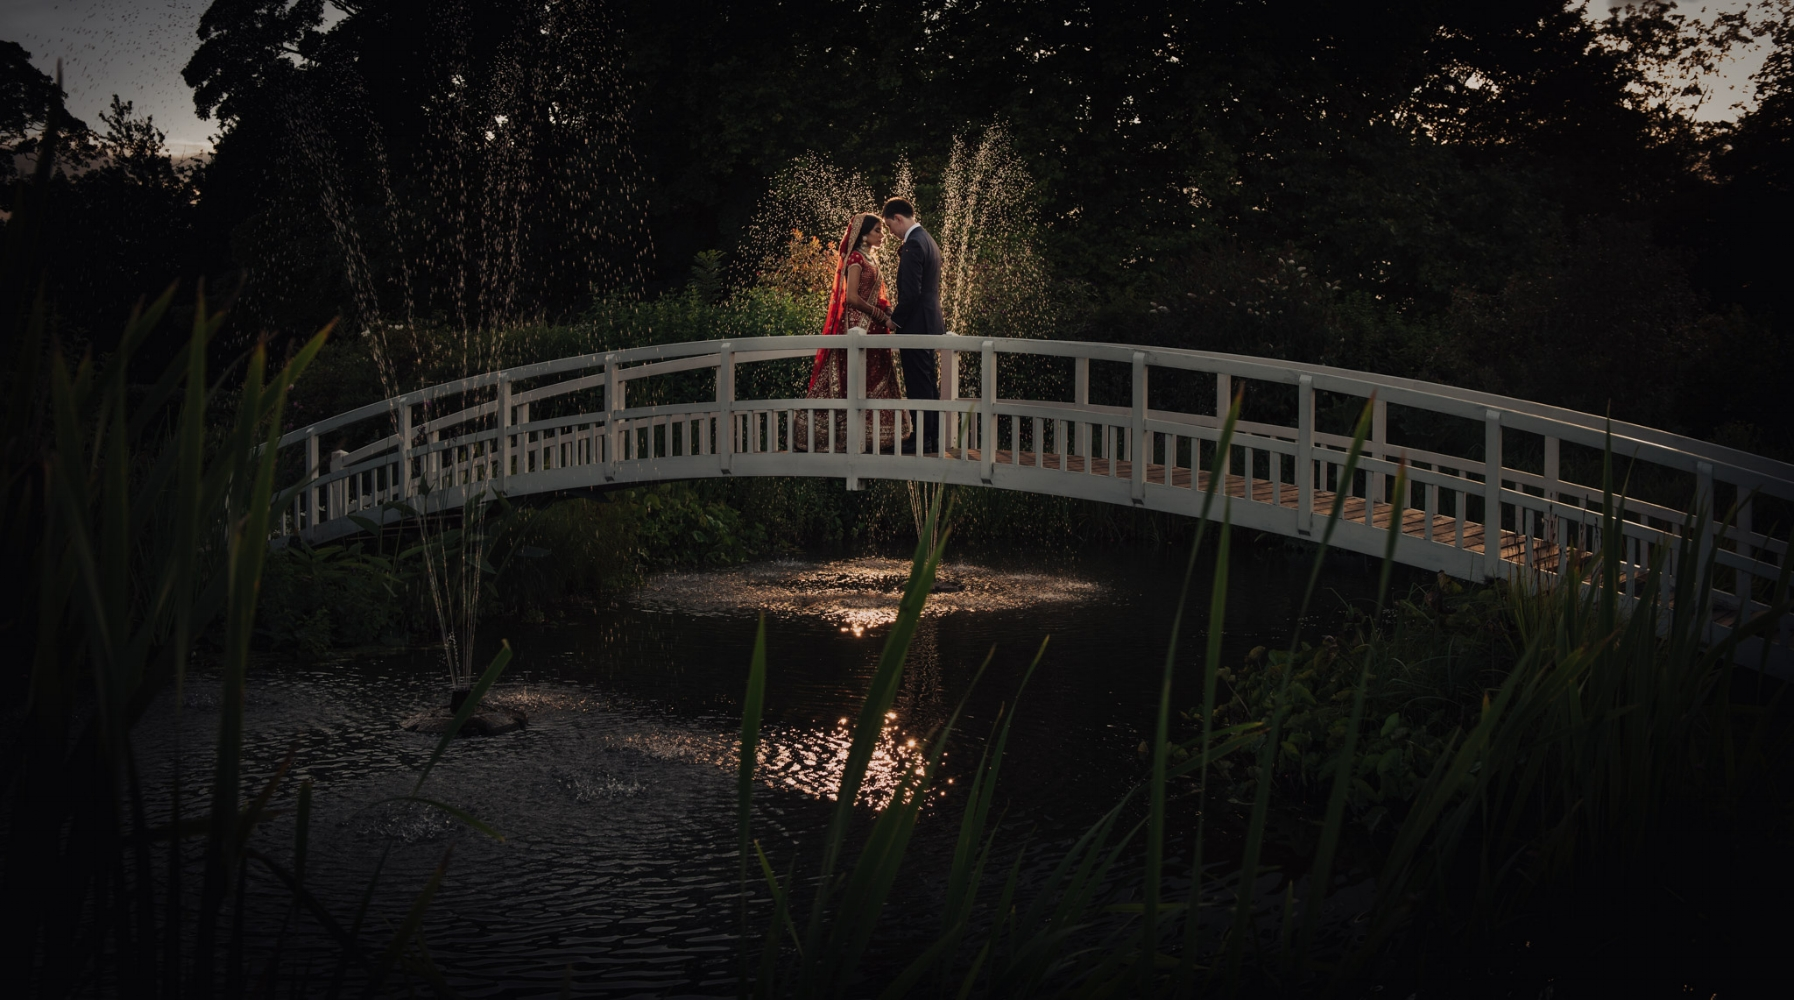 asian wedding photography at fennes estate by sikhanddread